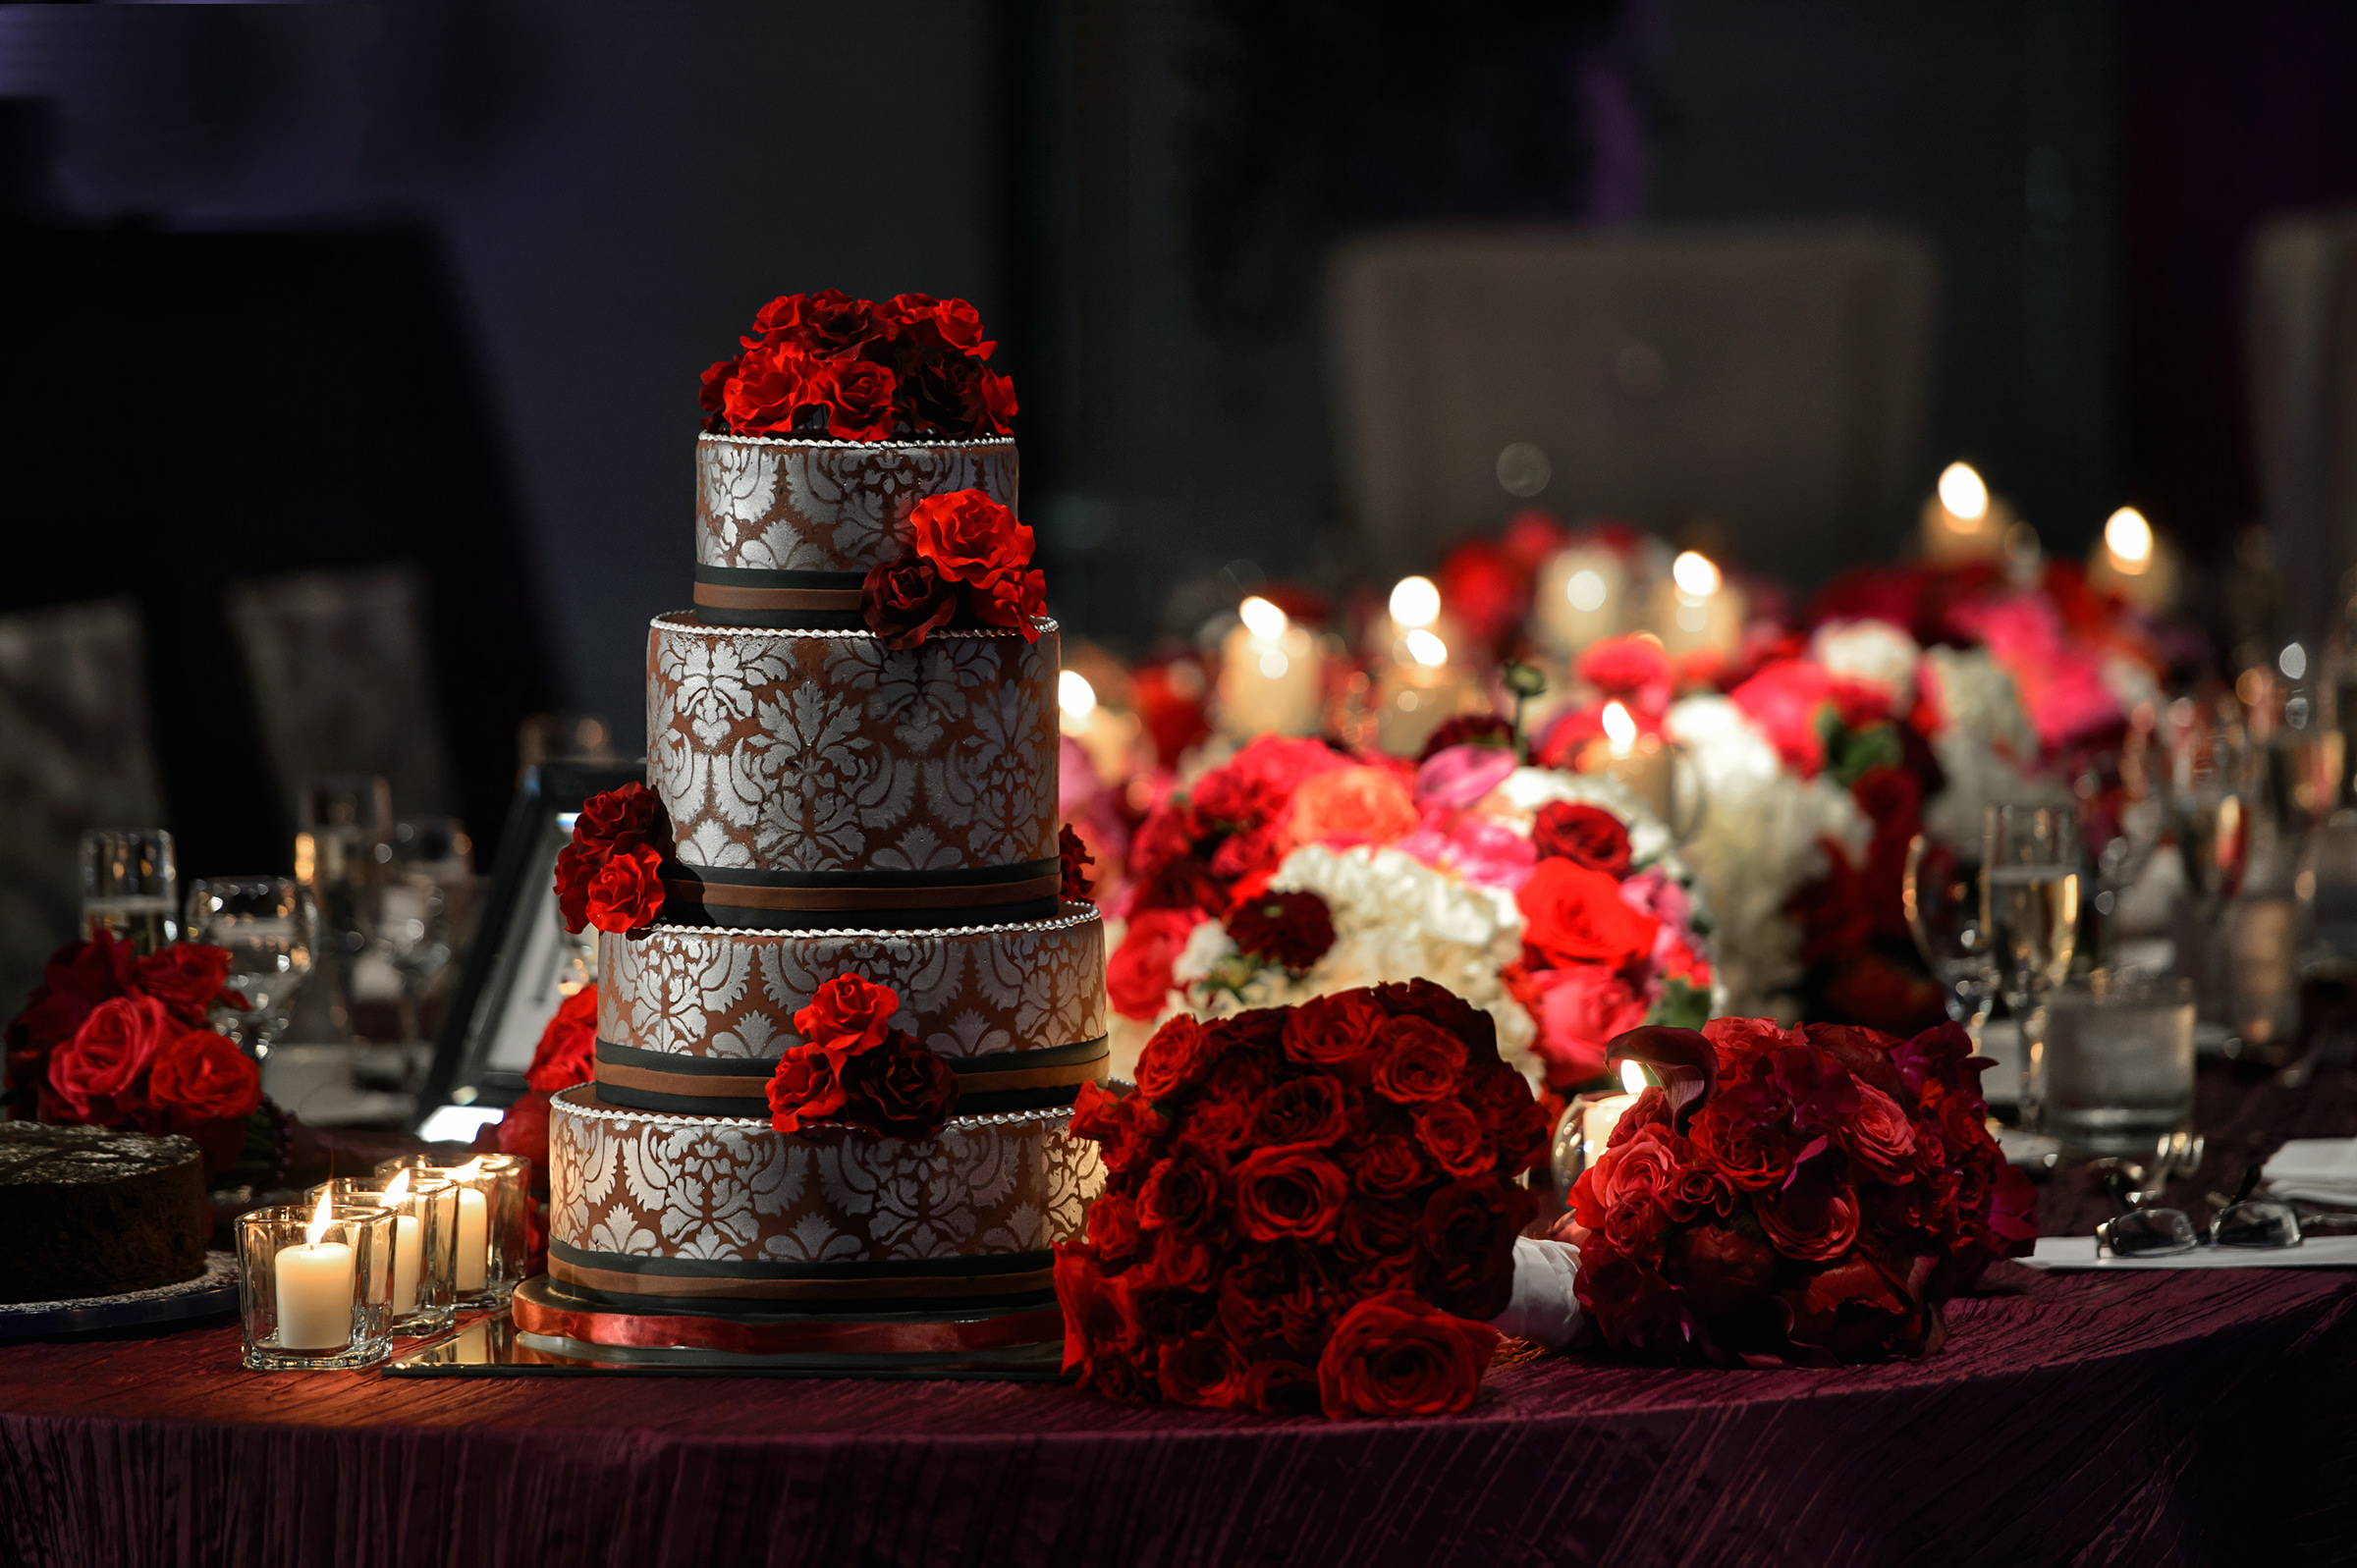 wedding-cake-decorated-with-red-roses-david-sherry-photography